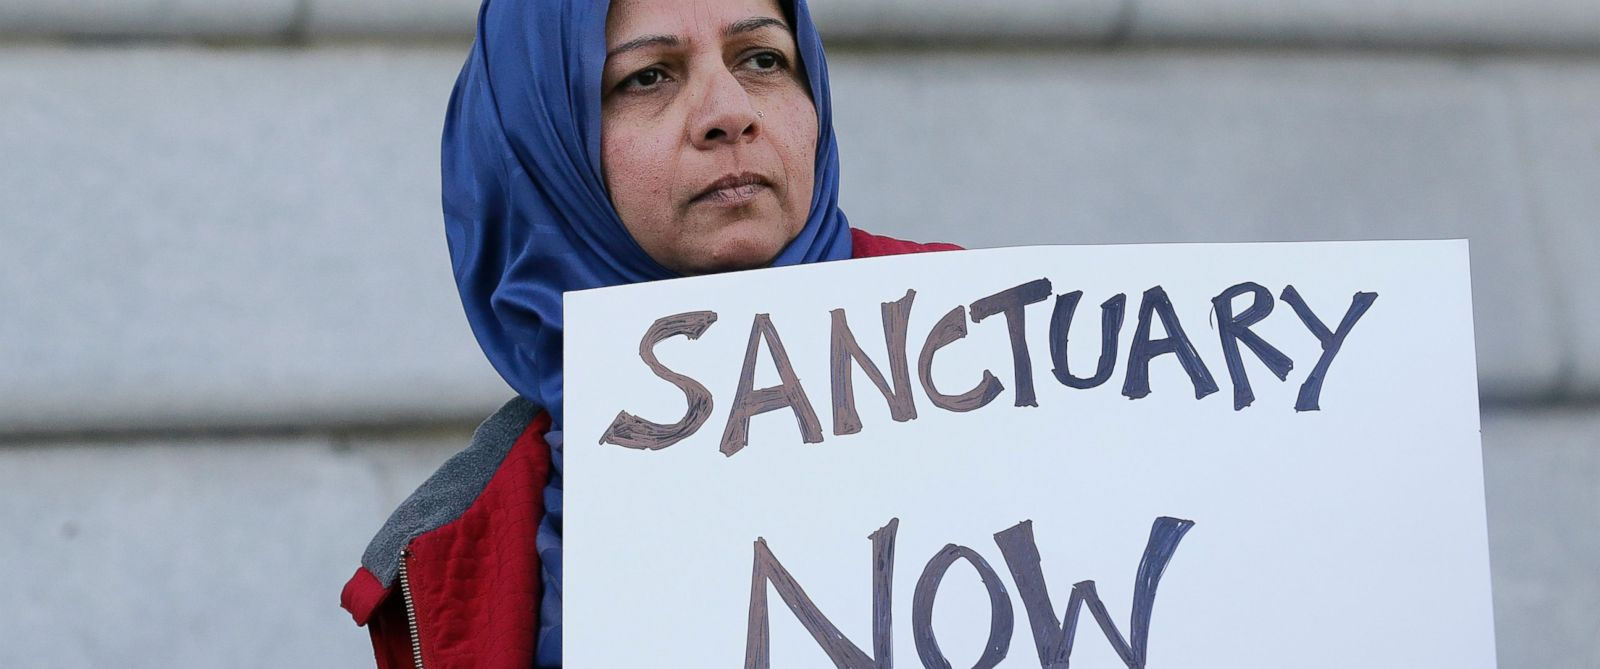 Image result for baltimore sanctuary city